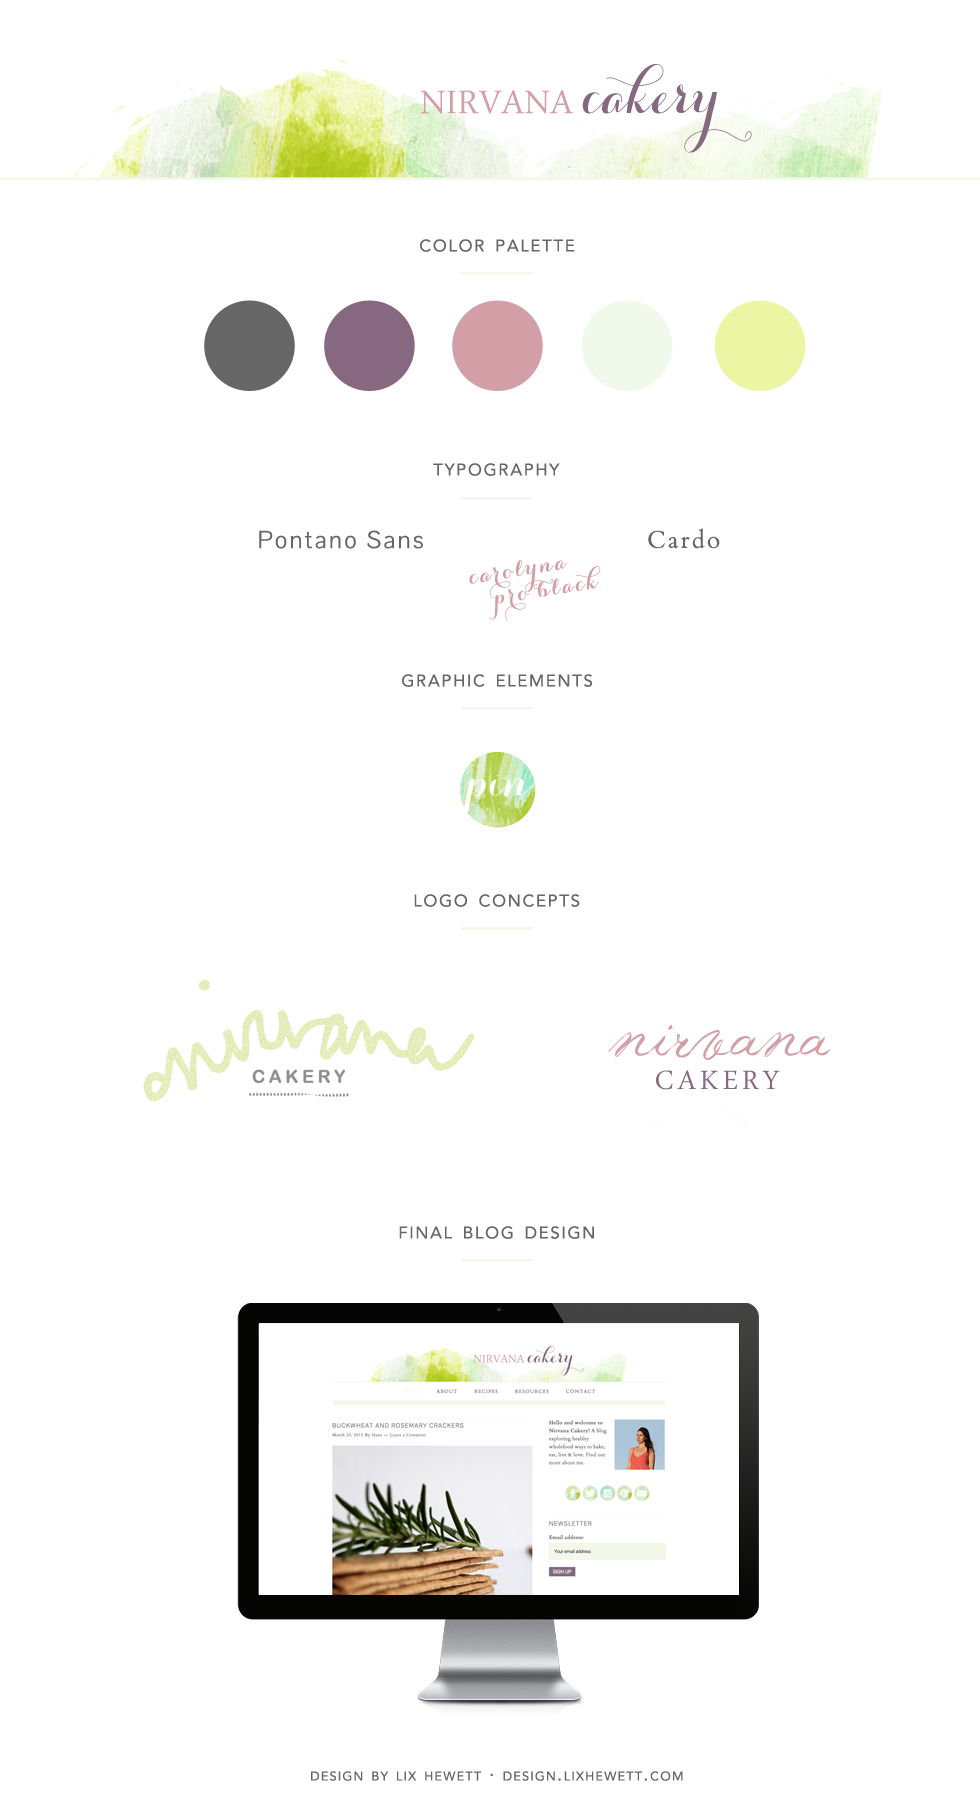 Branding + Blog Design for WordPress Food Blog Nirvana Cakery